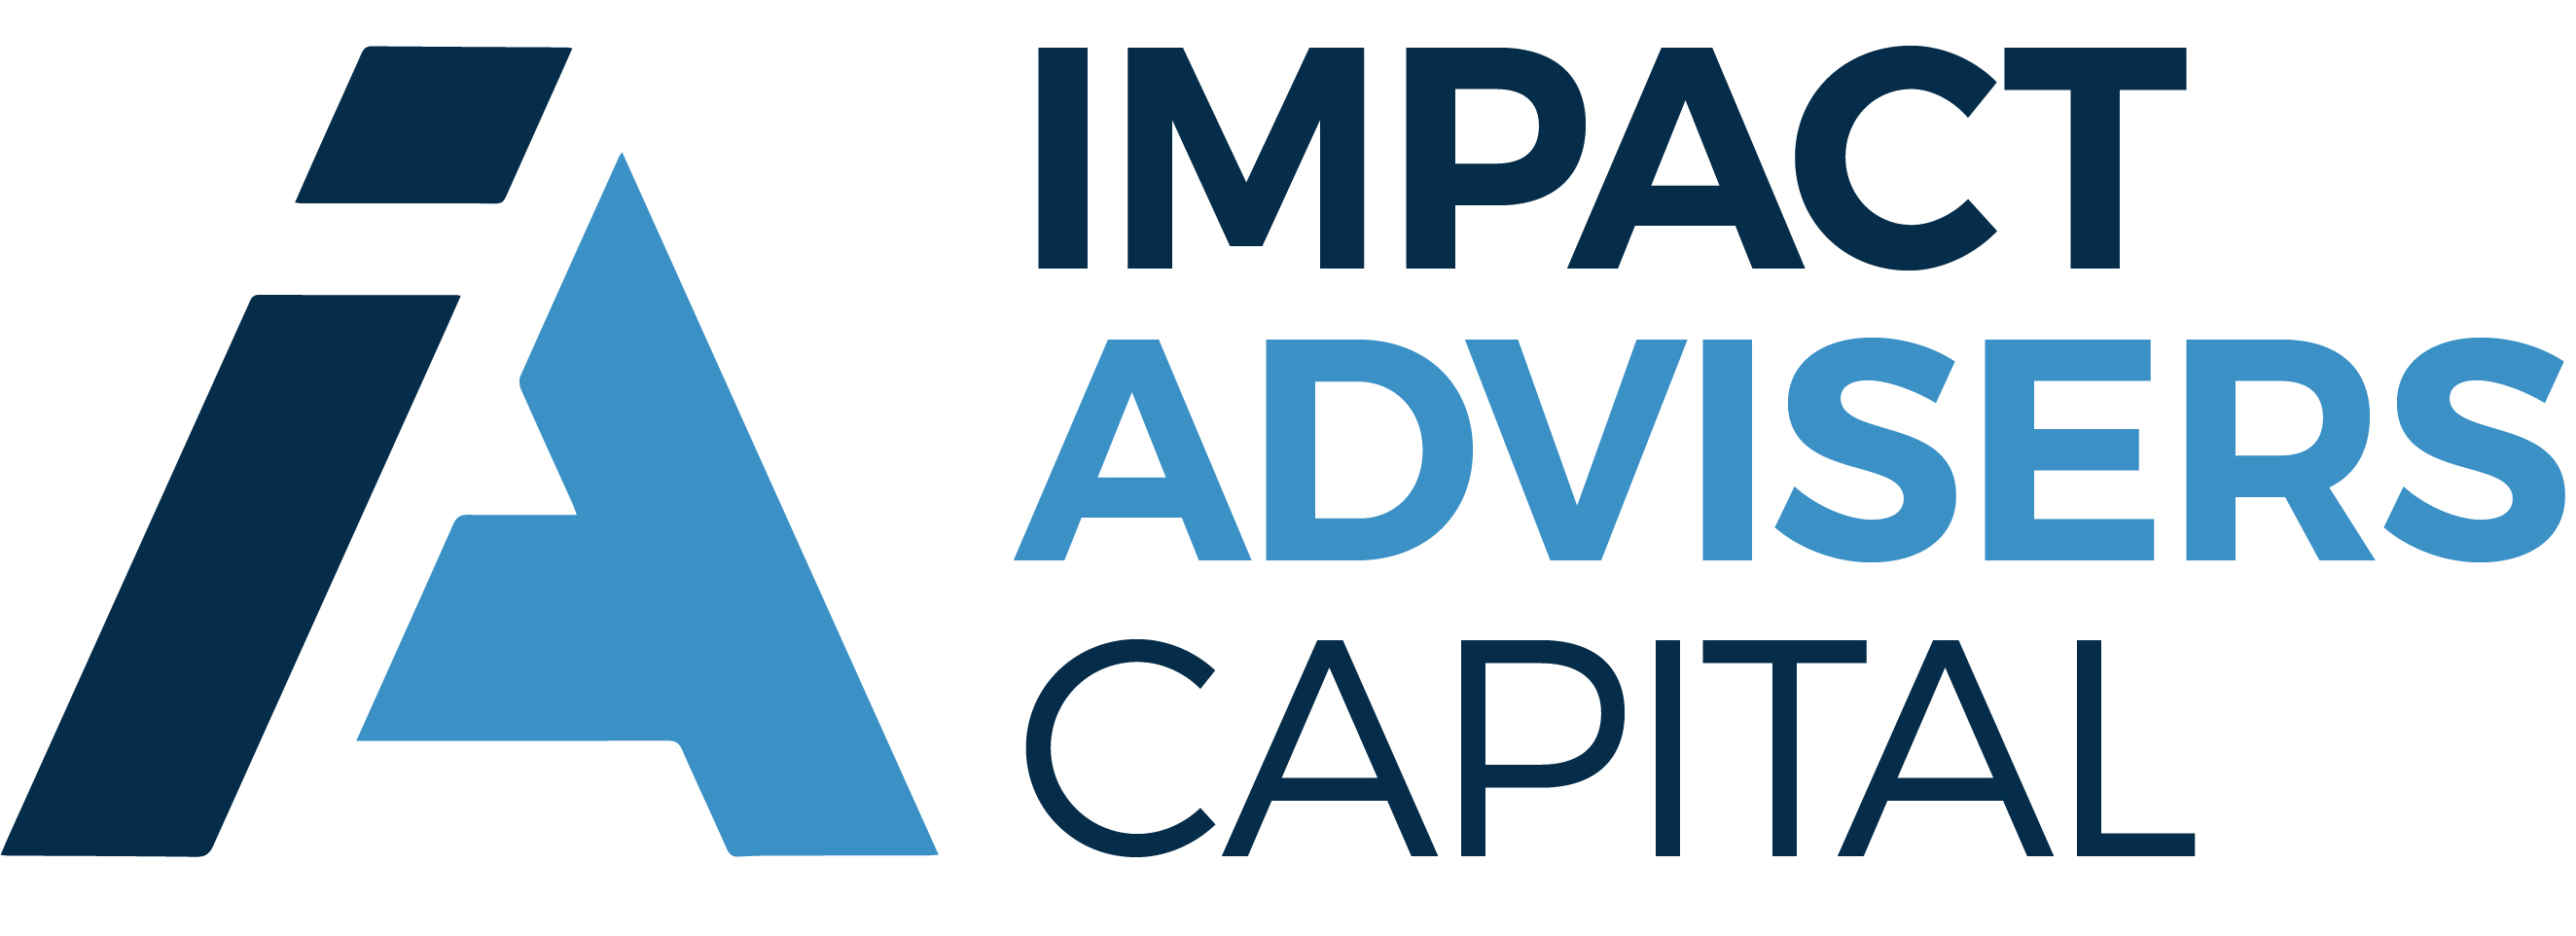 Impact Advisers Capital LLC - company logo